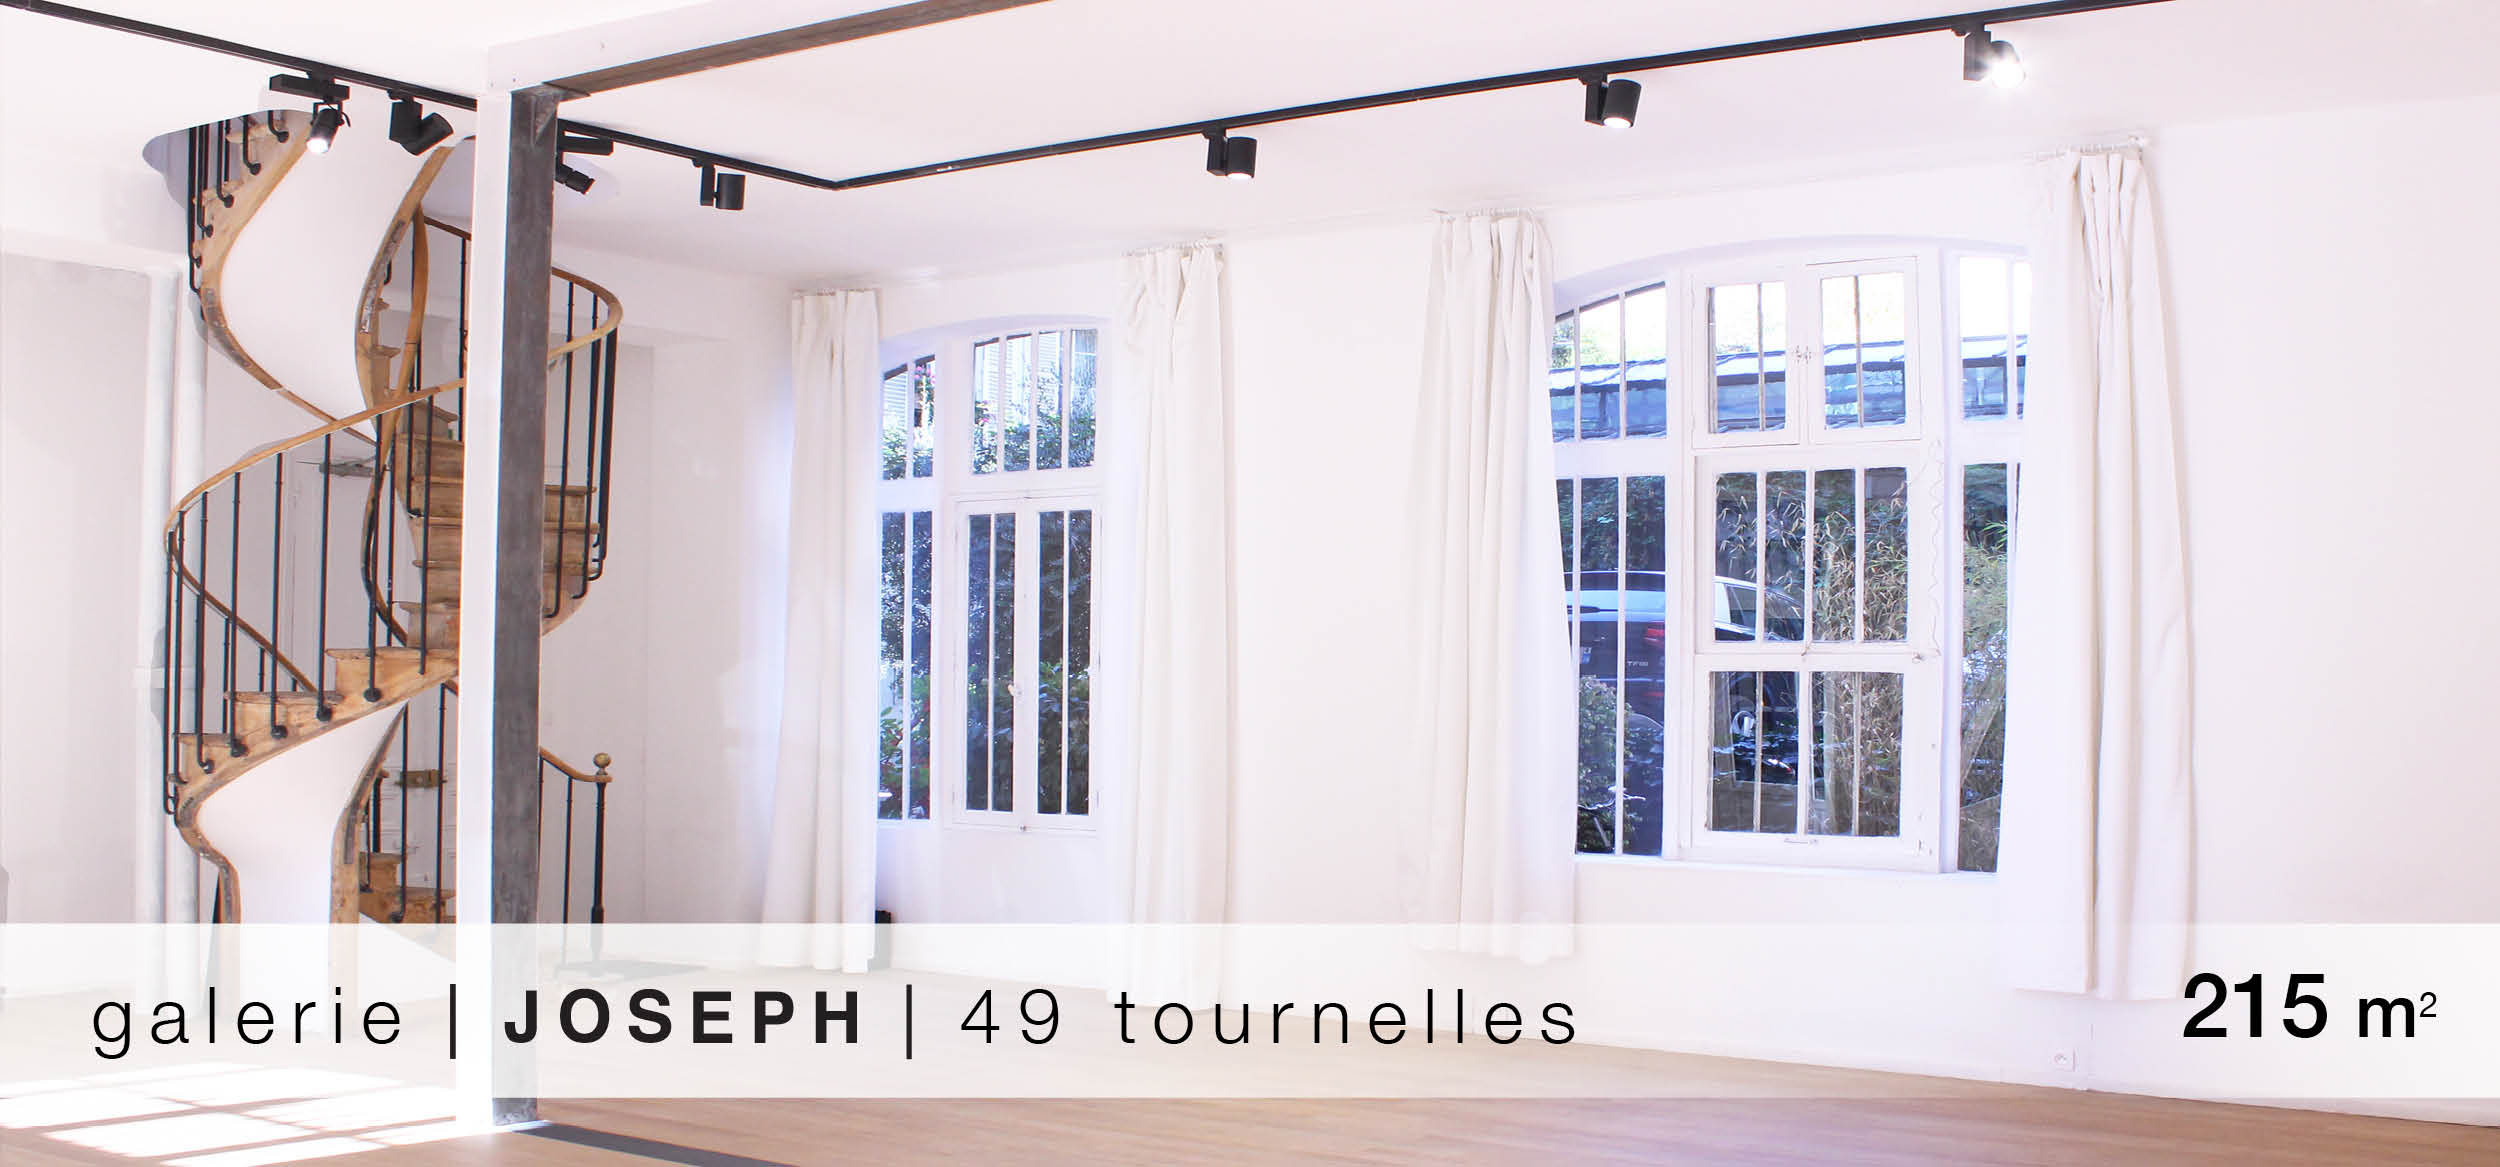 Galerie Joseph Turenelles location showroom Turnenelles